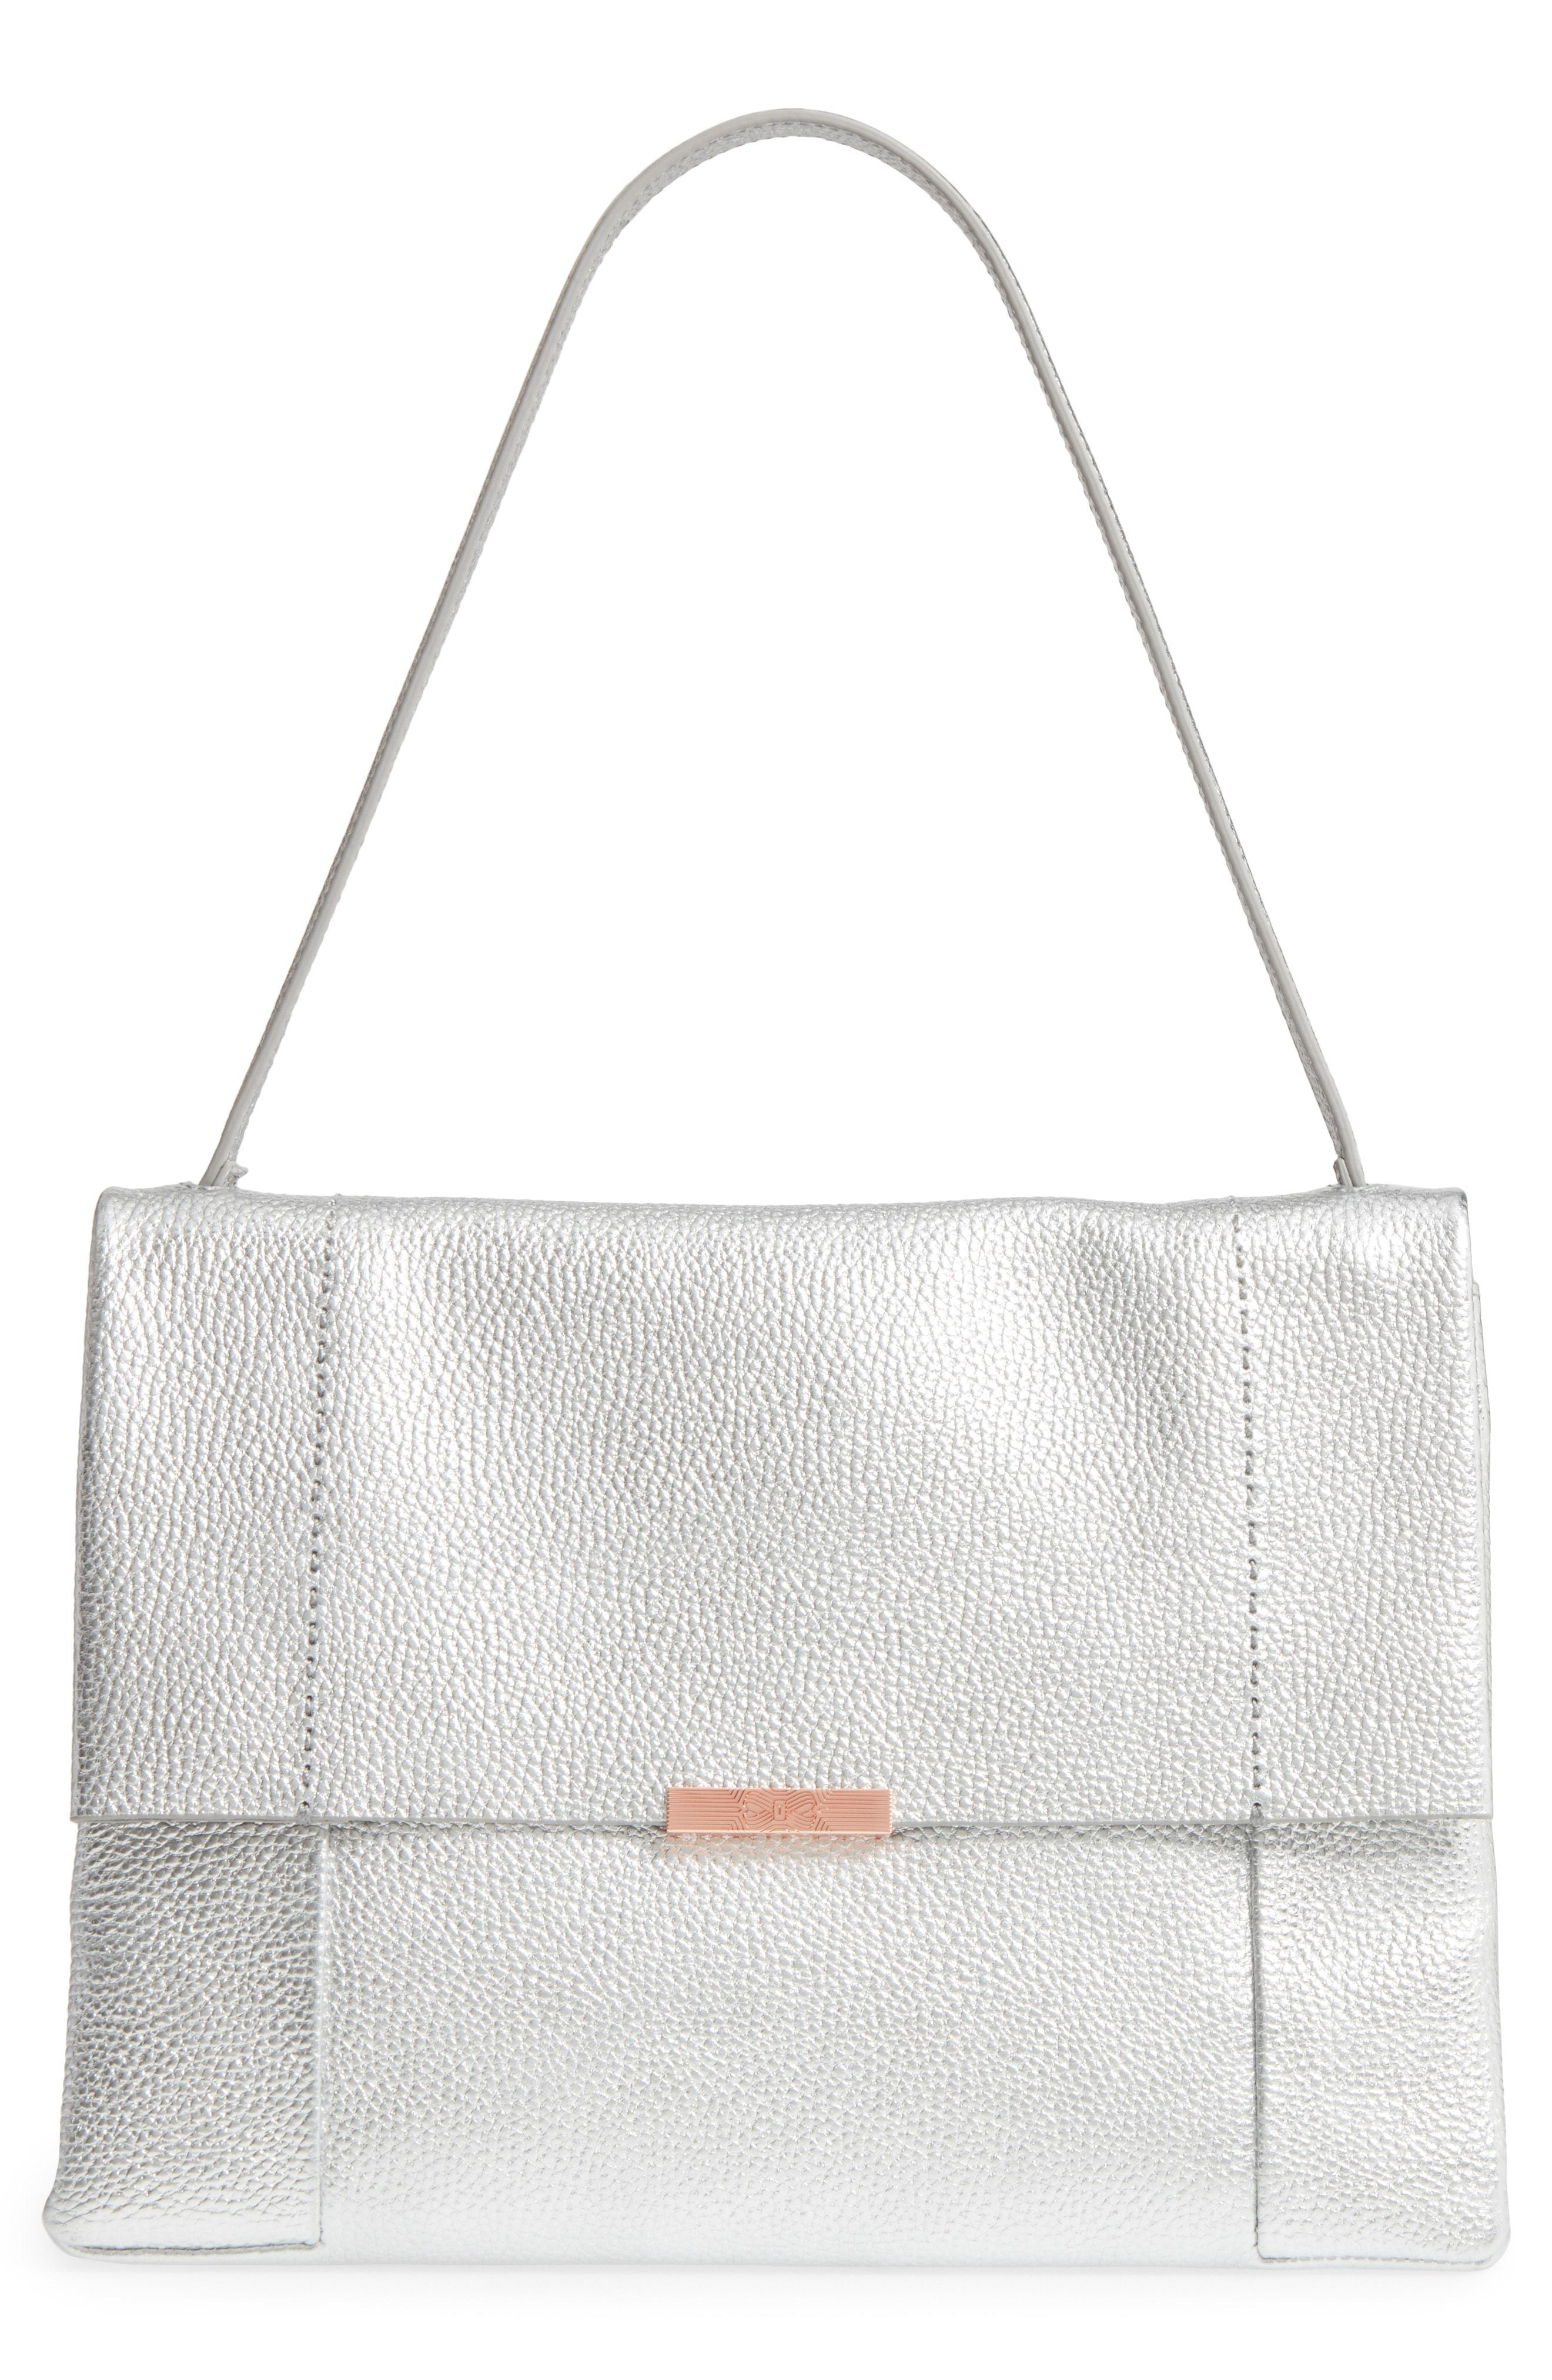 5b7ffb08e Partner Stores. Store Status Price. Ted Baker Proter Leather Shoulder Bag -  Metallic In Silver